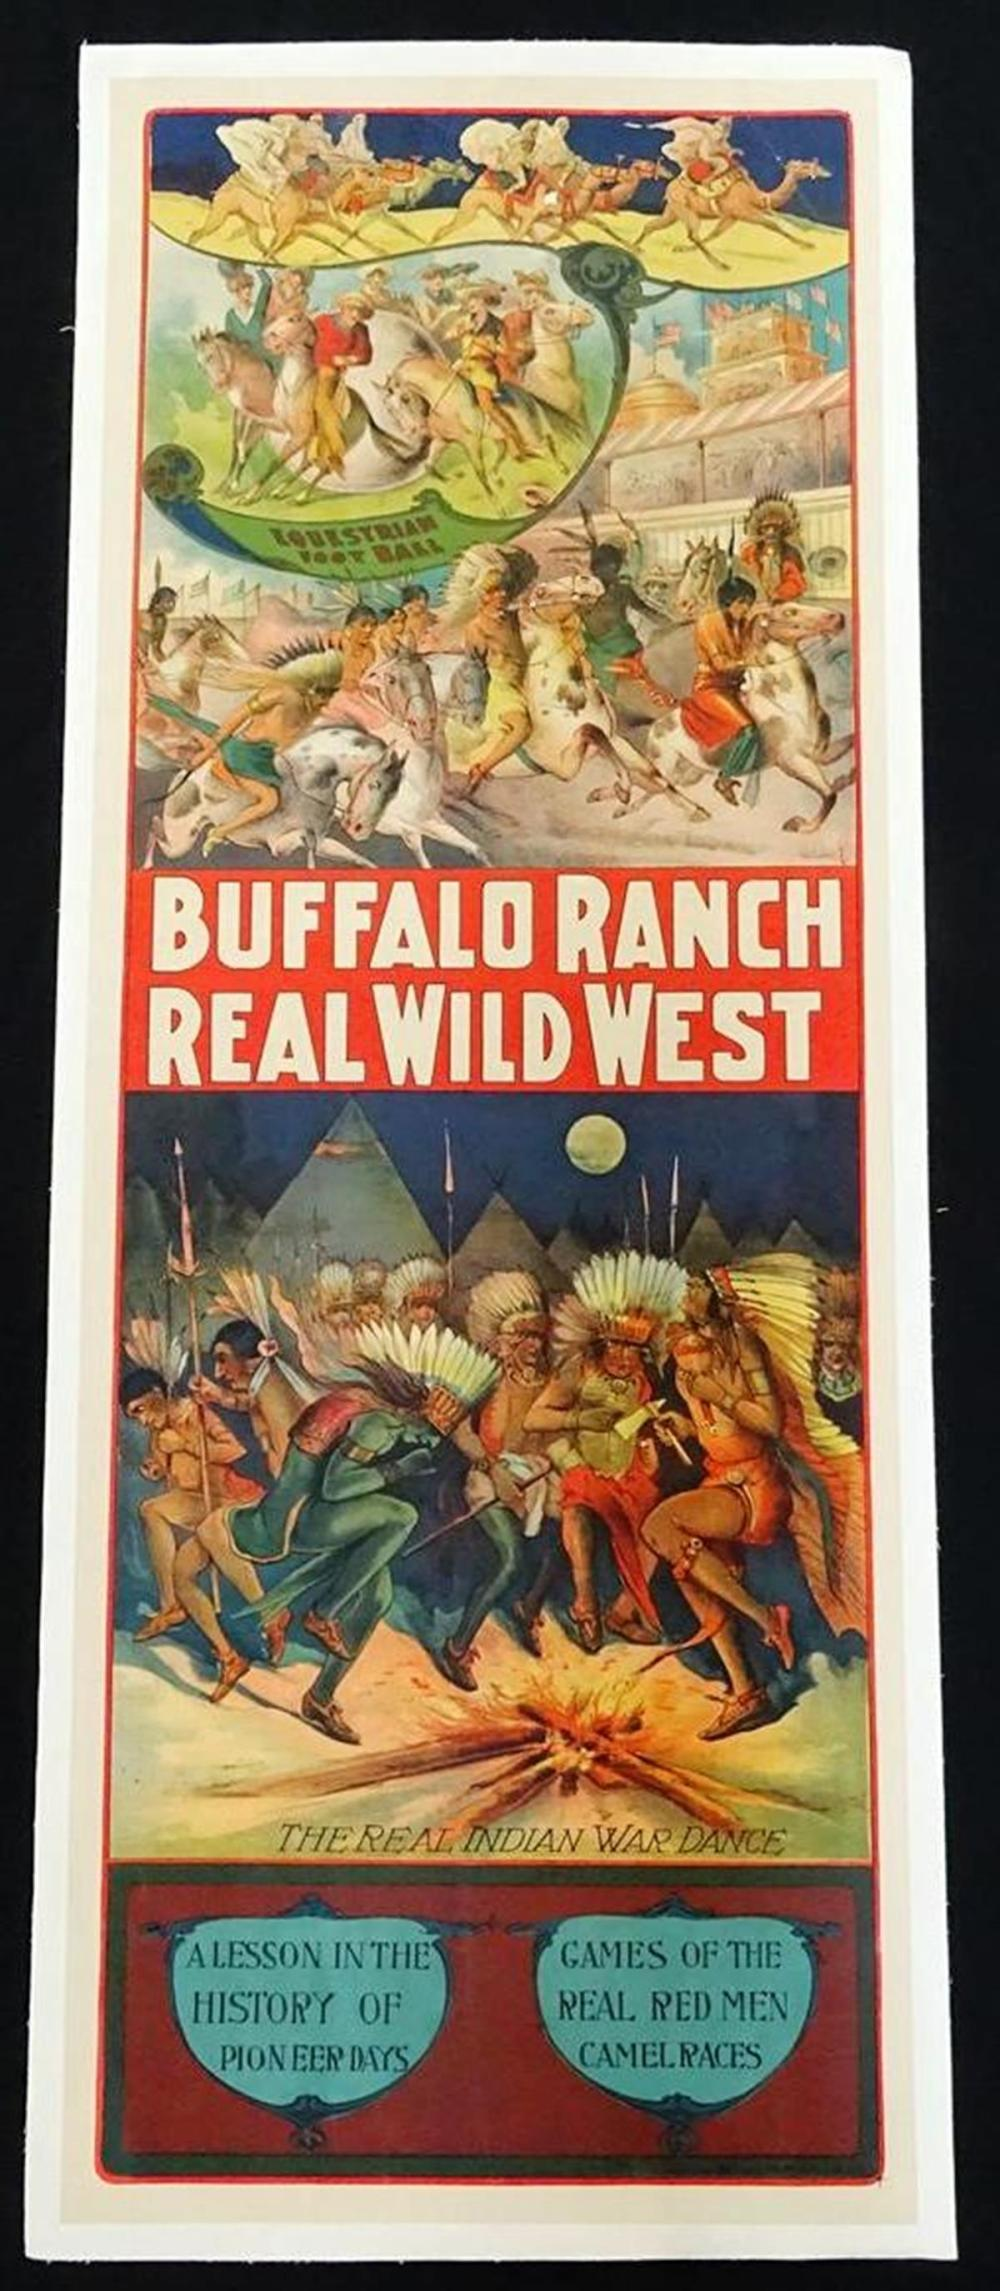 BUFFALO RANCH REAL WILD WEST POSTER